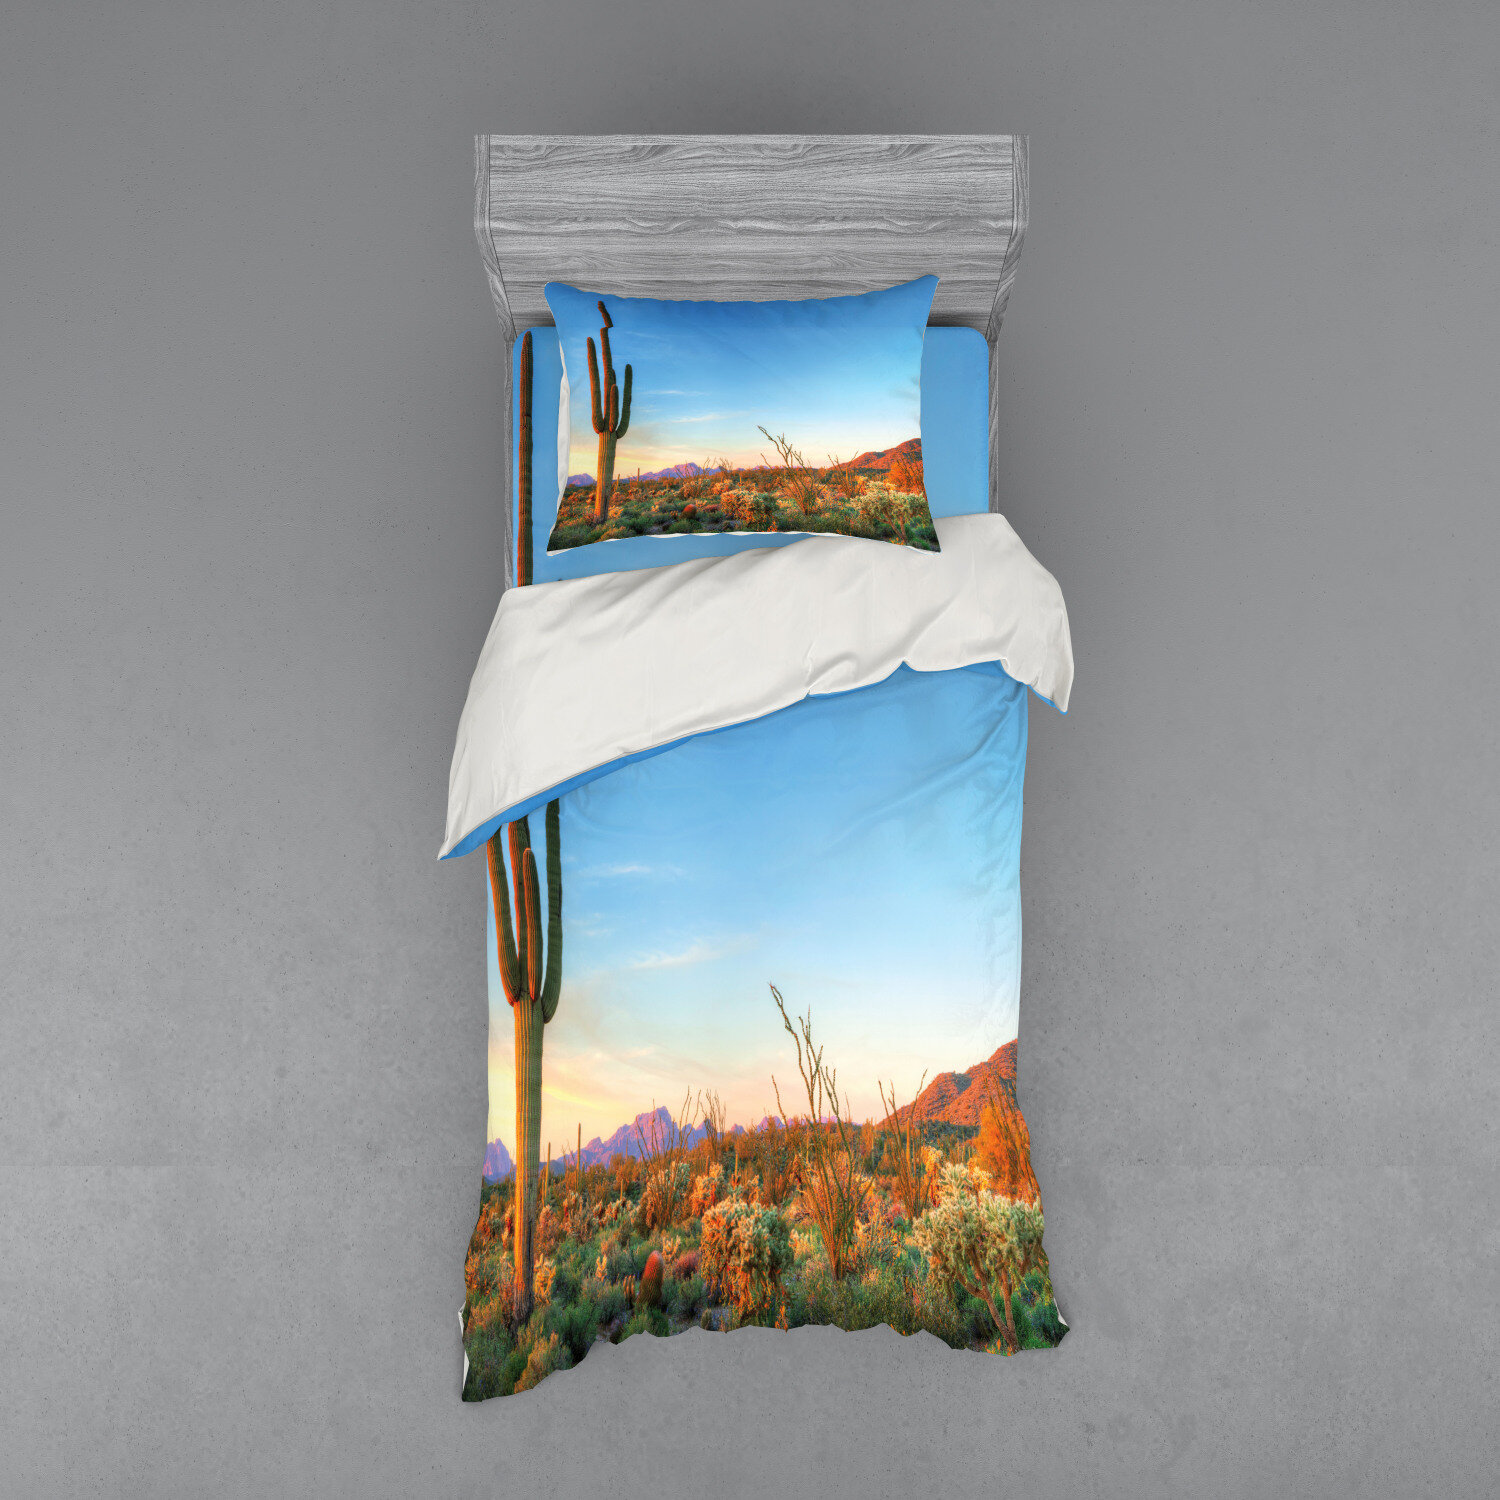 East Urban Home Sun Goes Down In Desert Prickly Pear Cactus Southwest Texas National Park Duvet Cover Set Wayfair